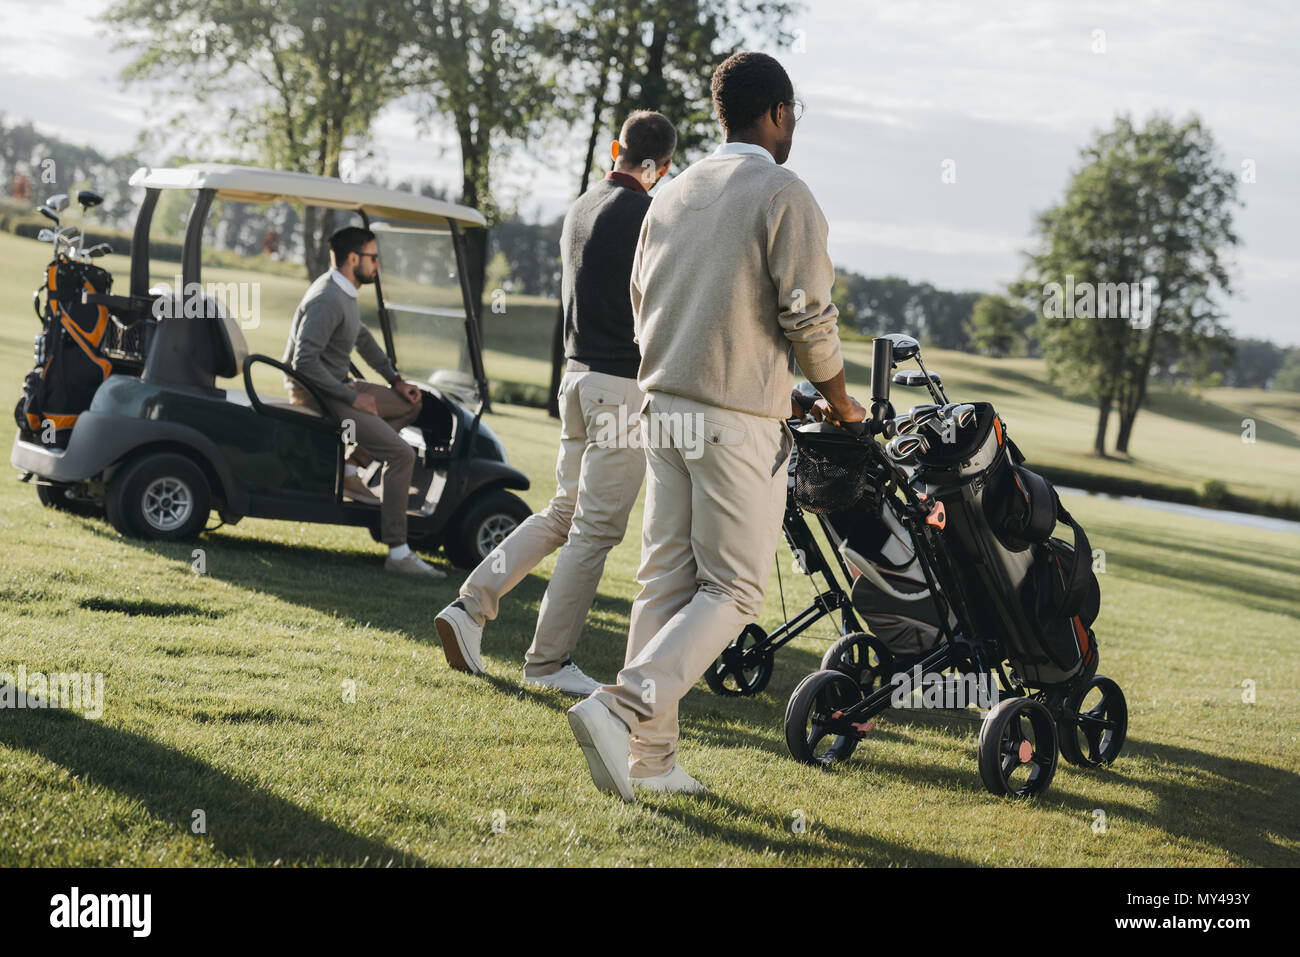 multiethnic golf players with golf bags and golf cart spending time together - Stock Image